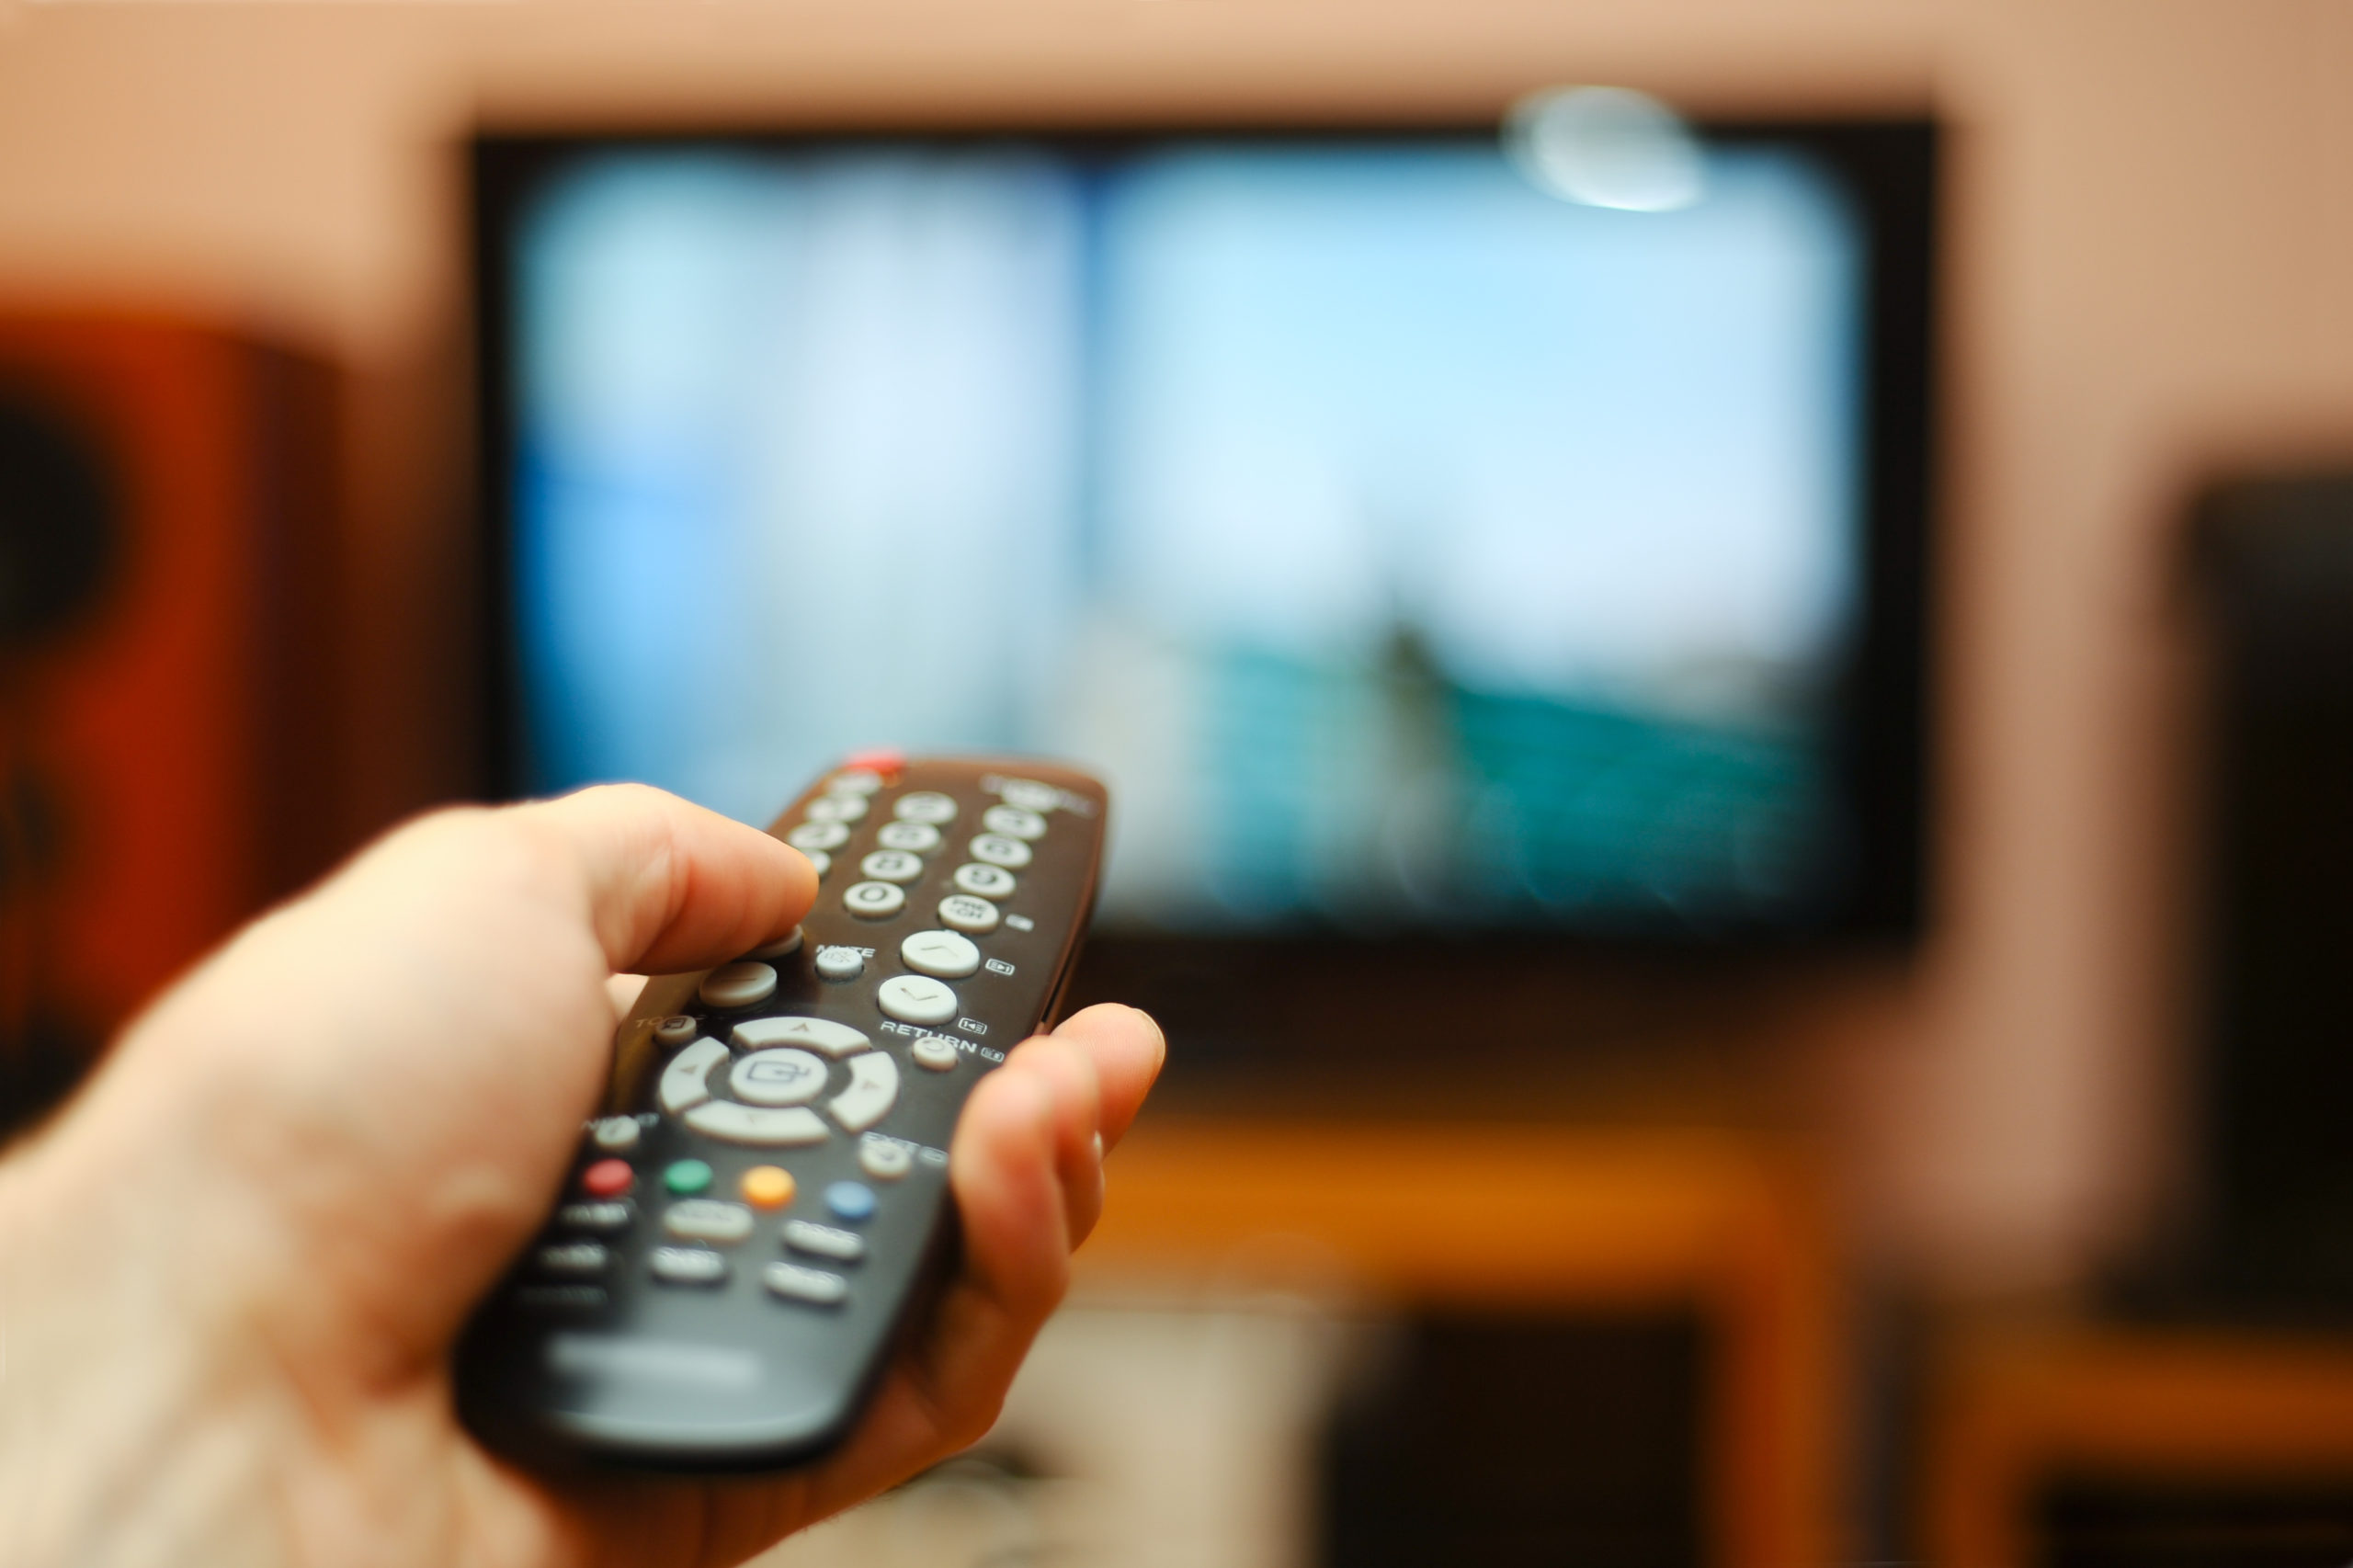 Why don't you use the culture of Arab TV to learn to speak Arabic better? Watch more TV and learn more Arabic. It's just that simple.